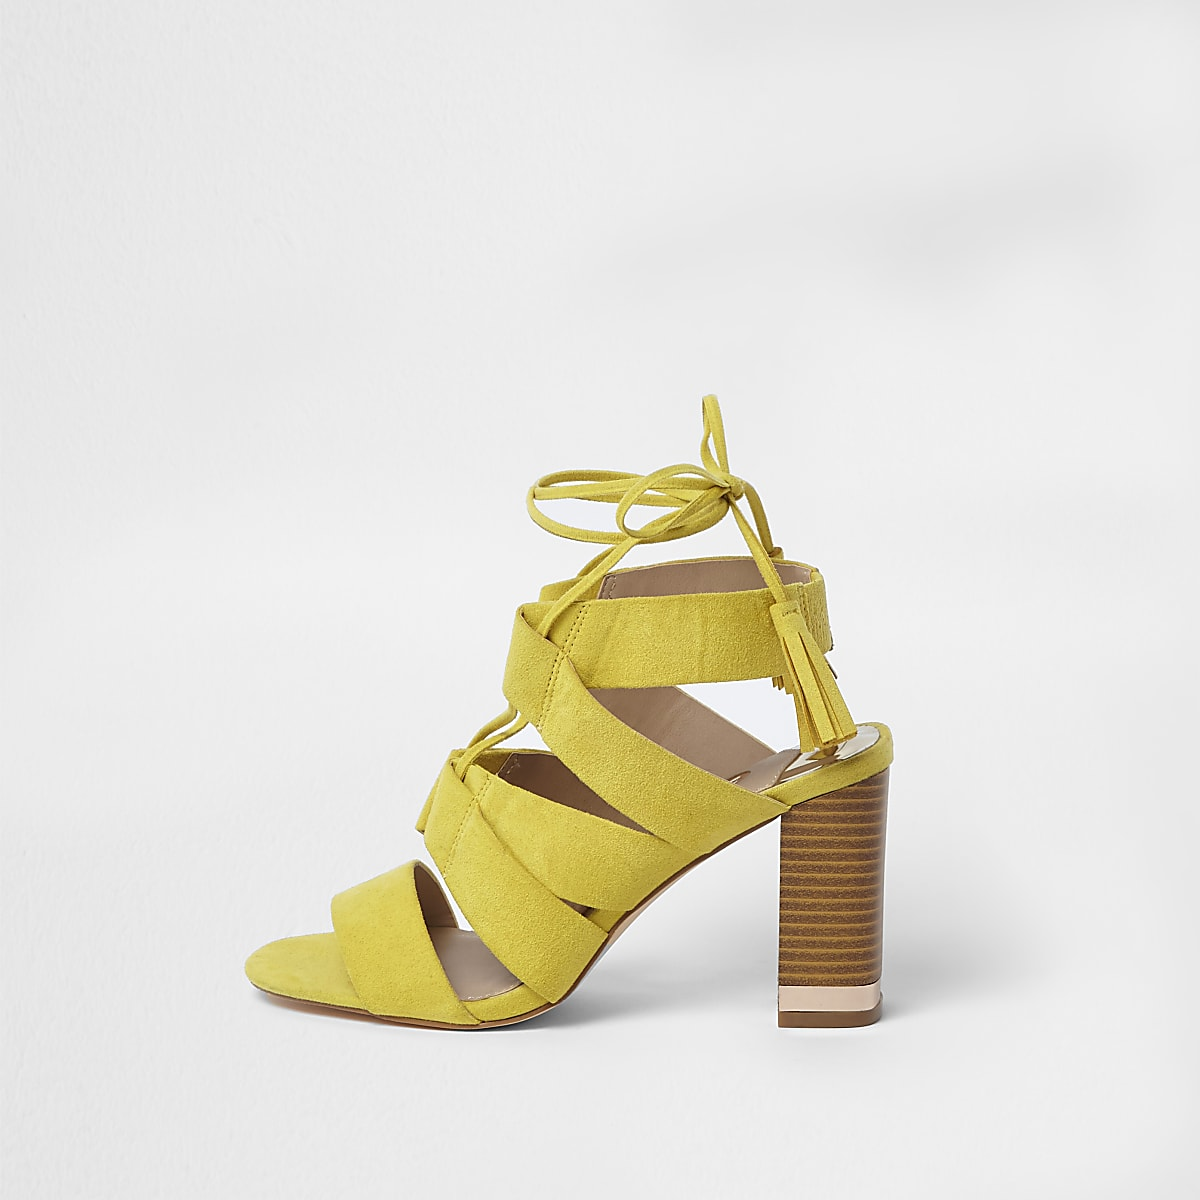 36dd7ebfc6b5 Yellow tie up block heel sandals - Sandals - Shoes   Boots - women